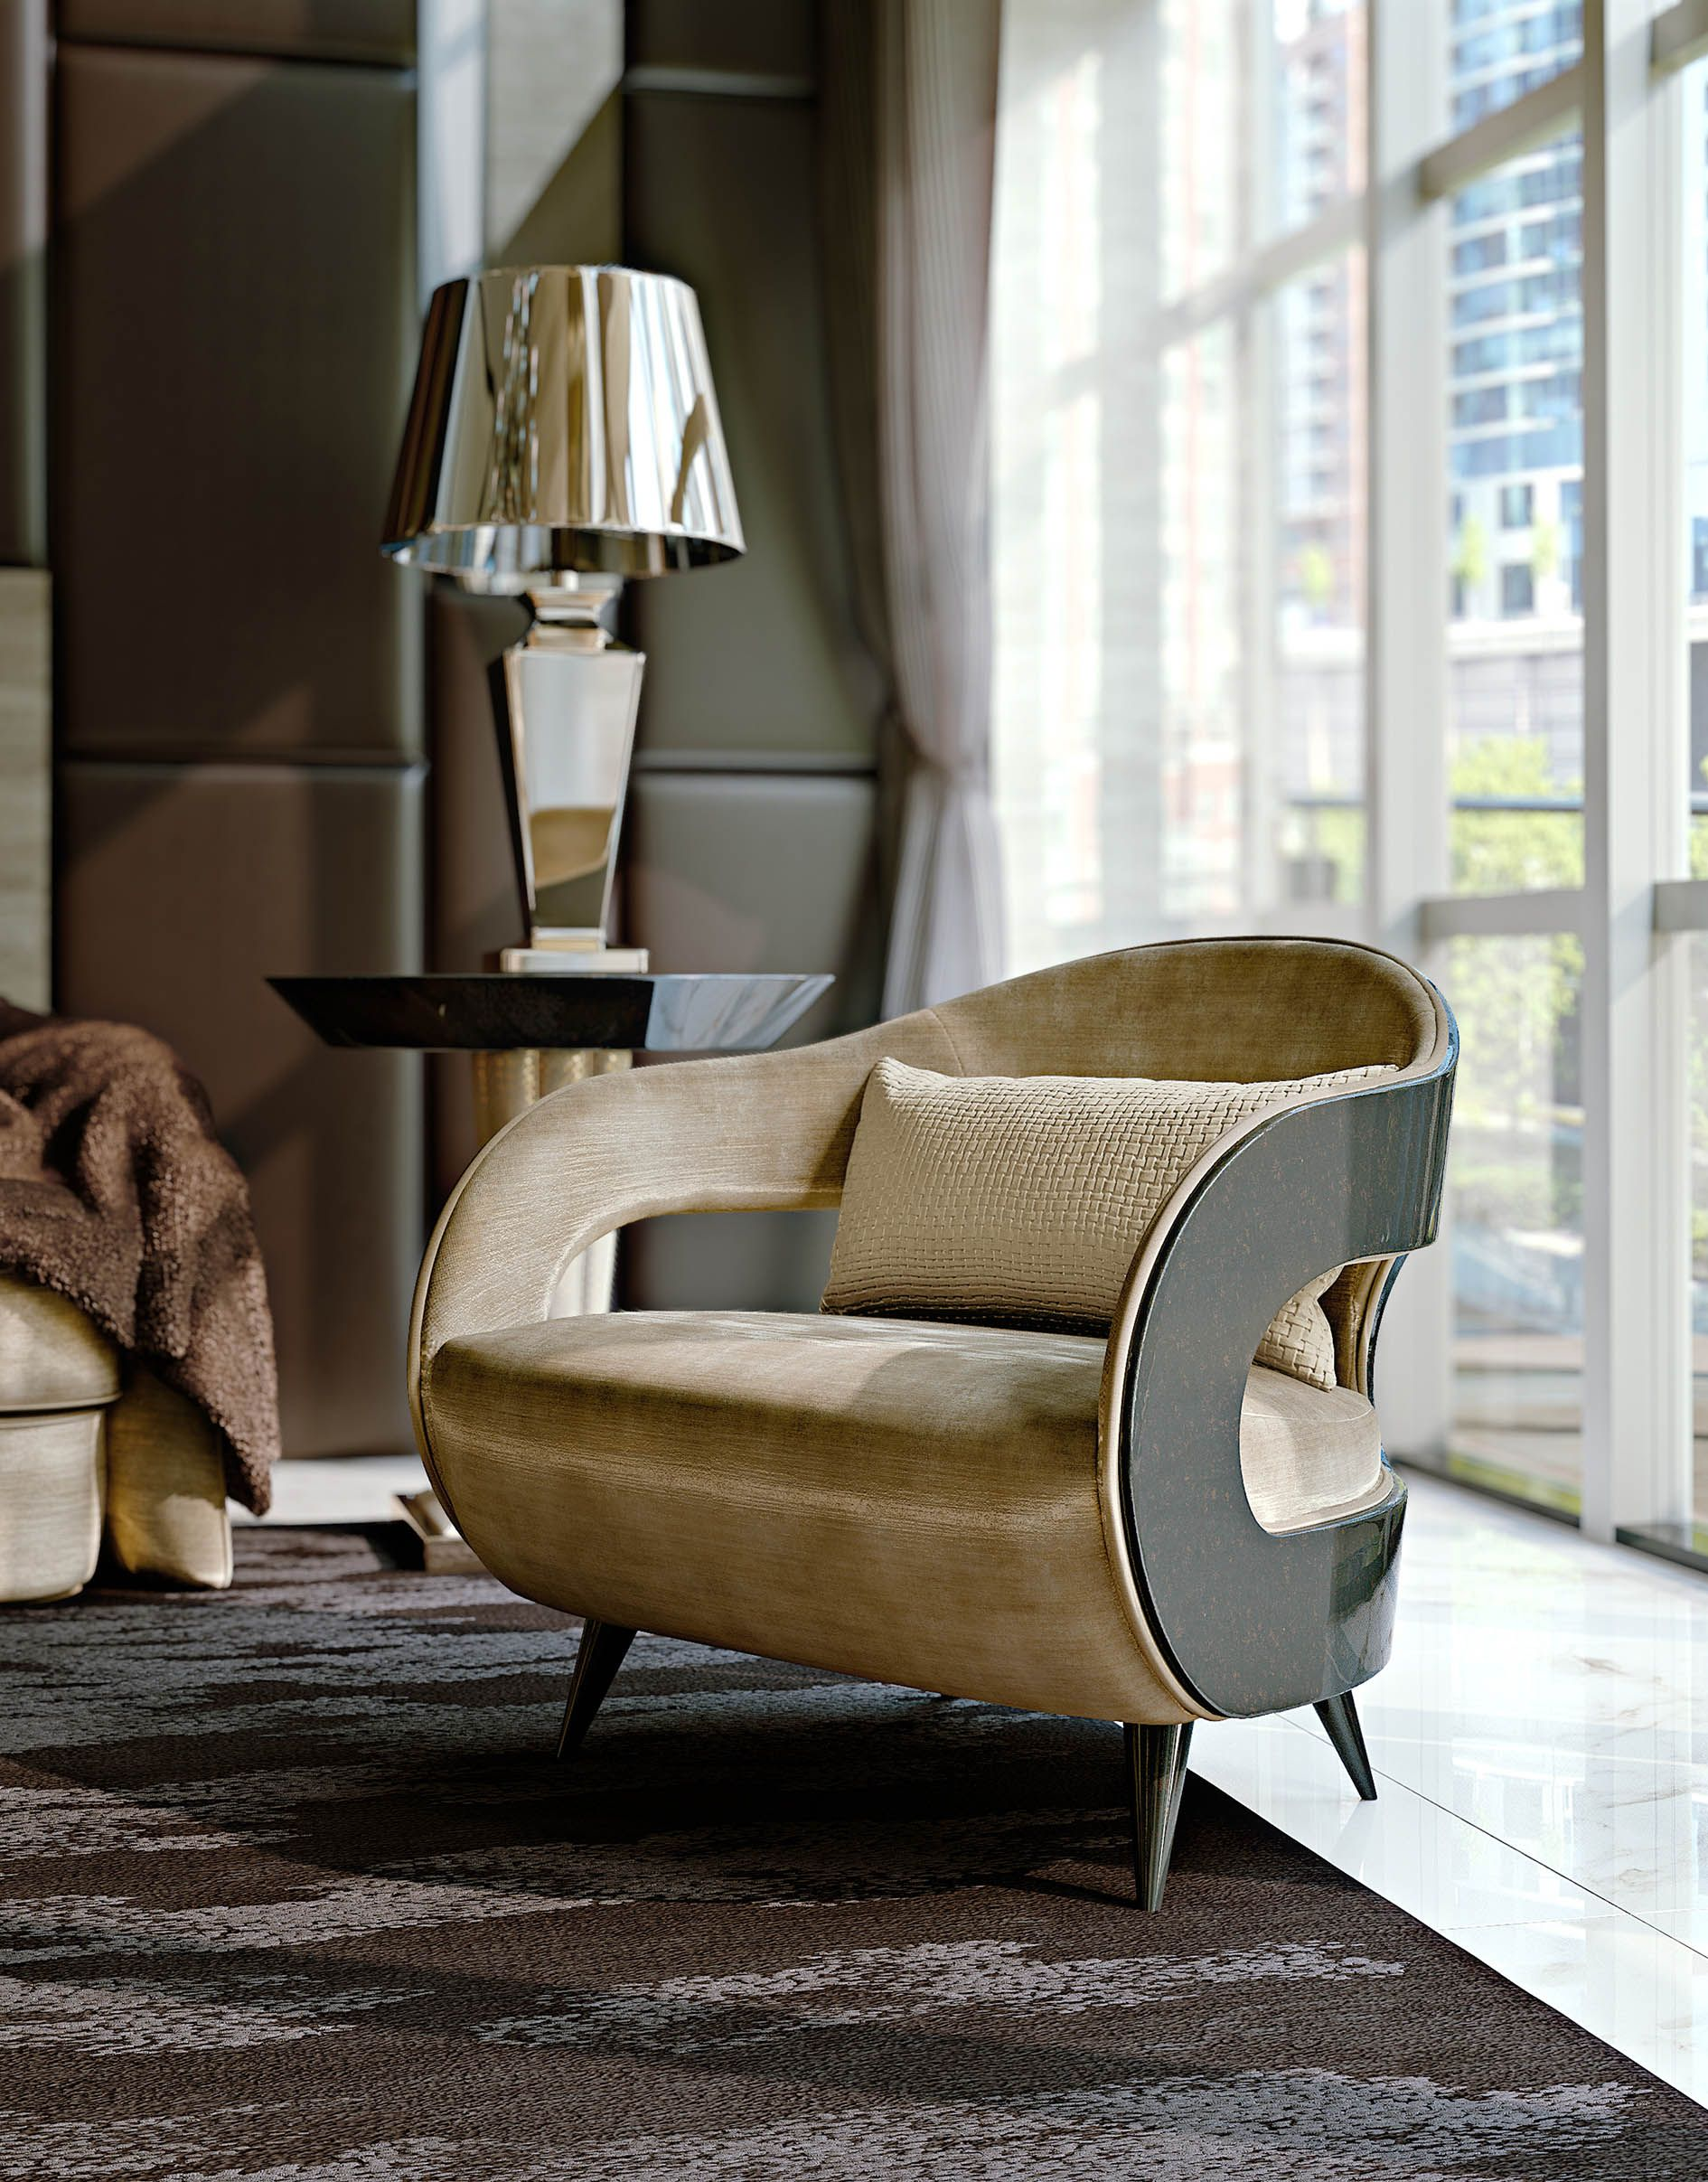 Stardust Collection Italian luxury design armchair